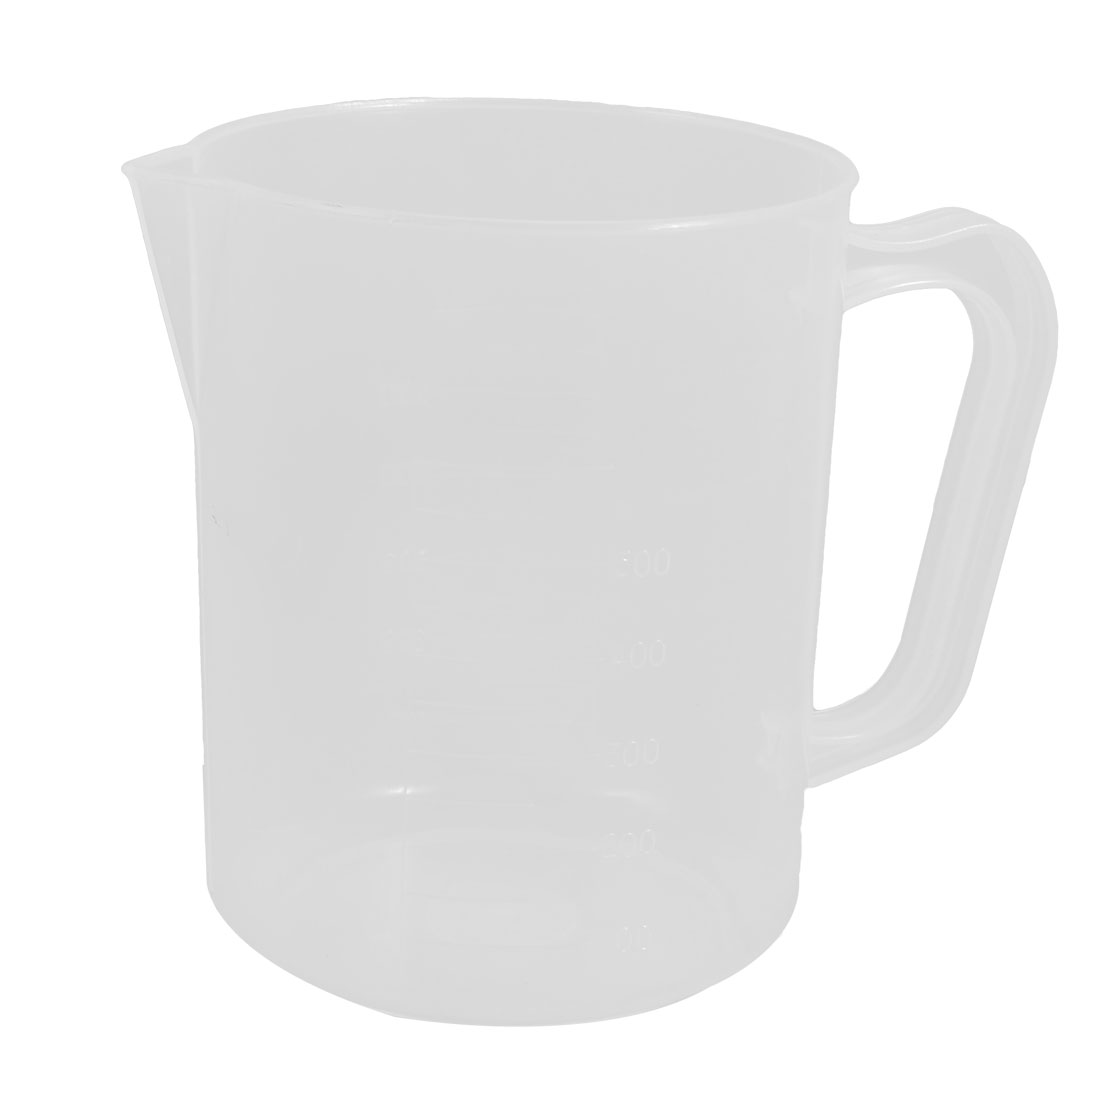 Clear White Plastic 500mL Capacity Graduated Measuring Cup with Handle